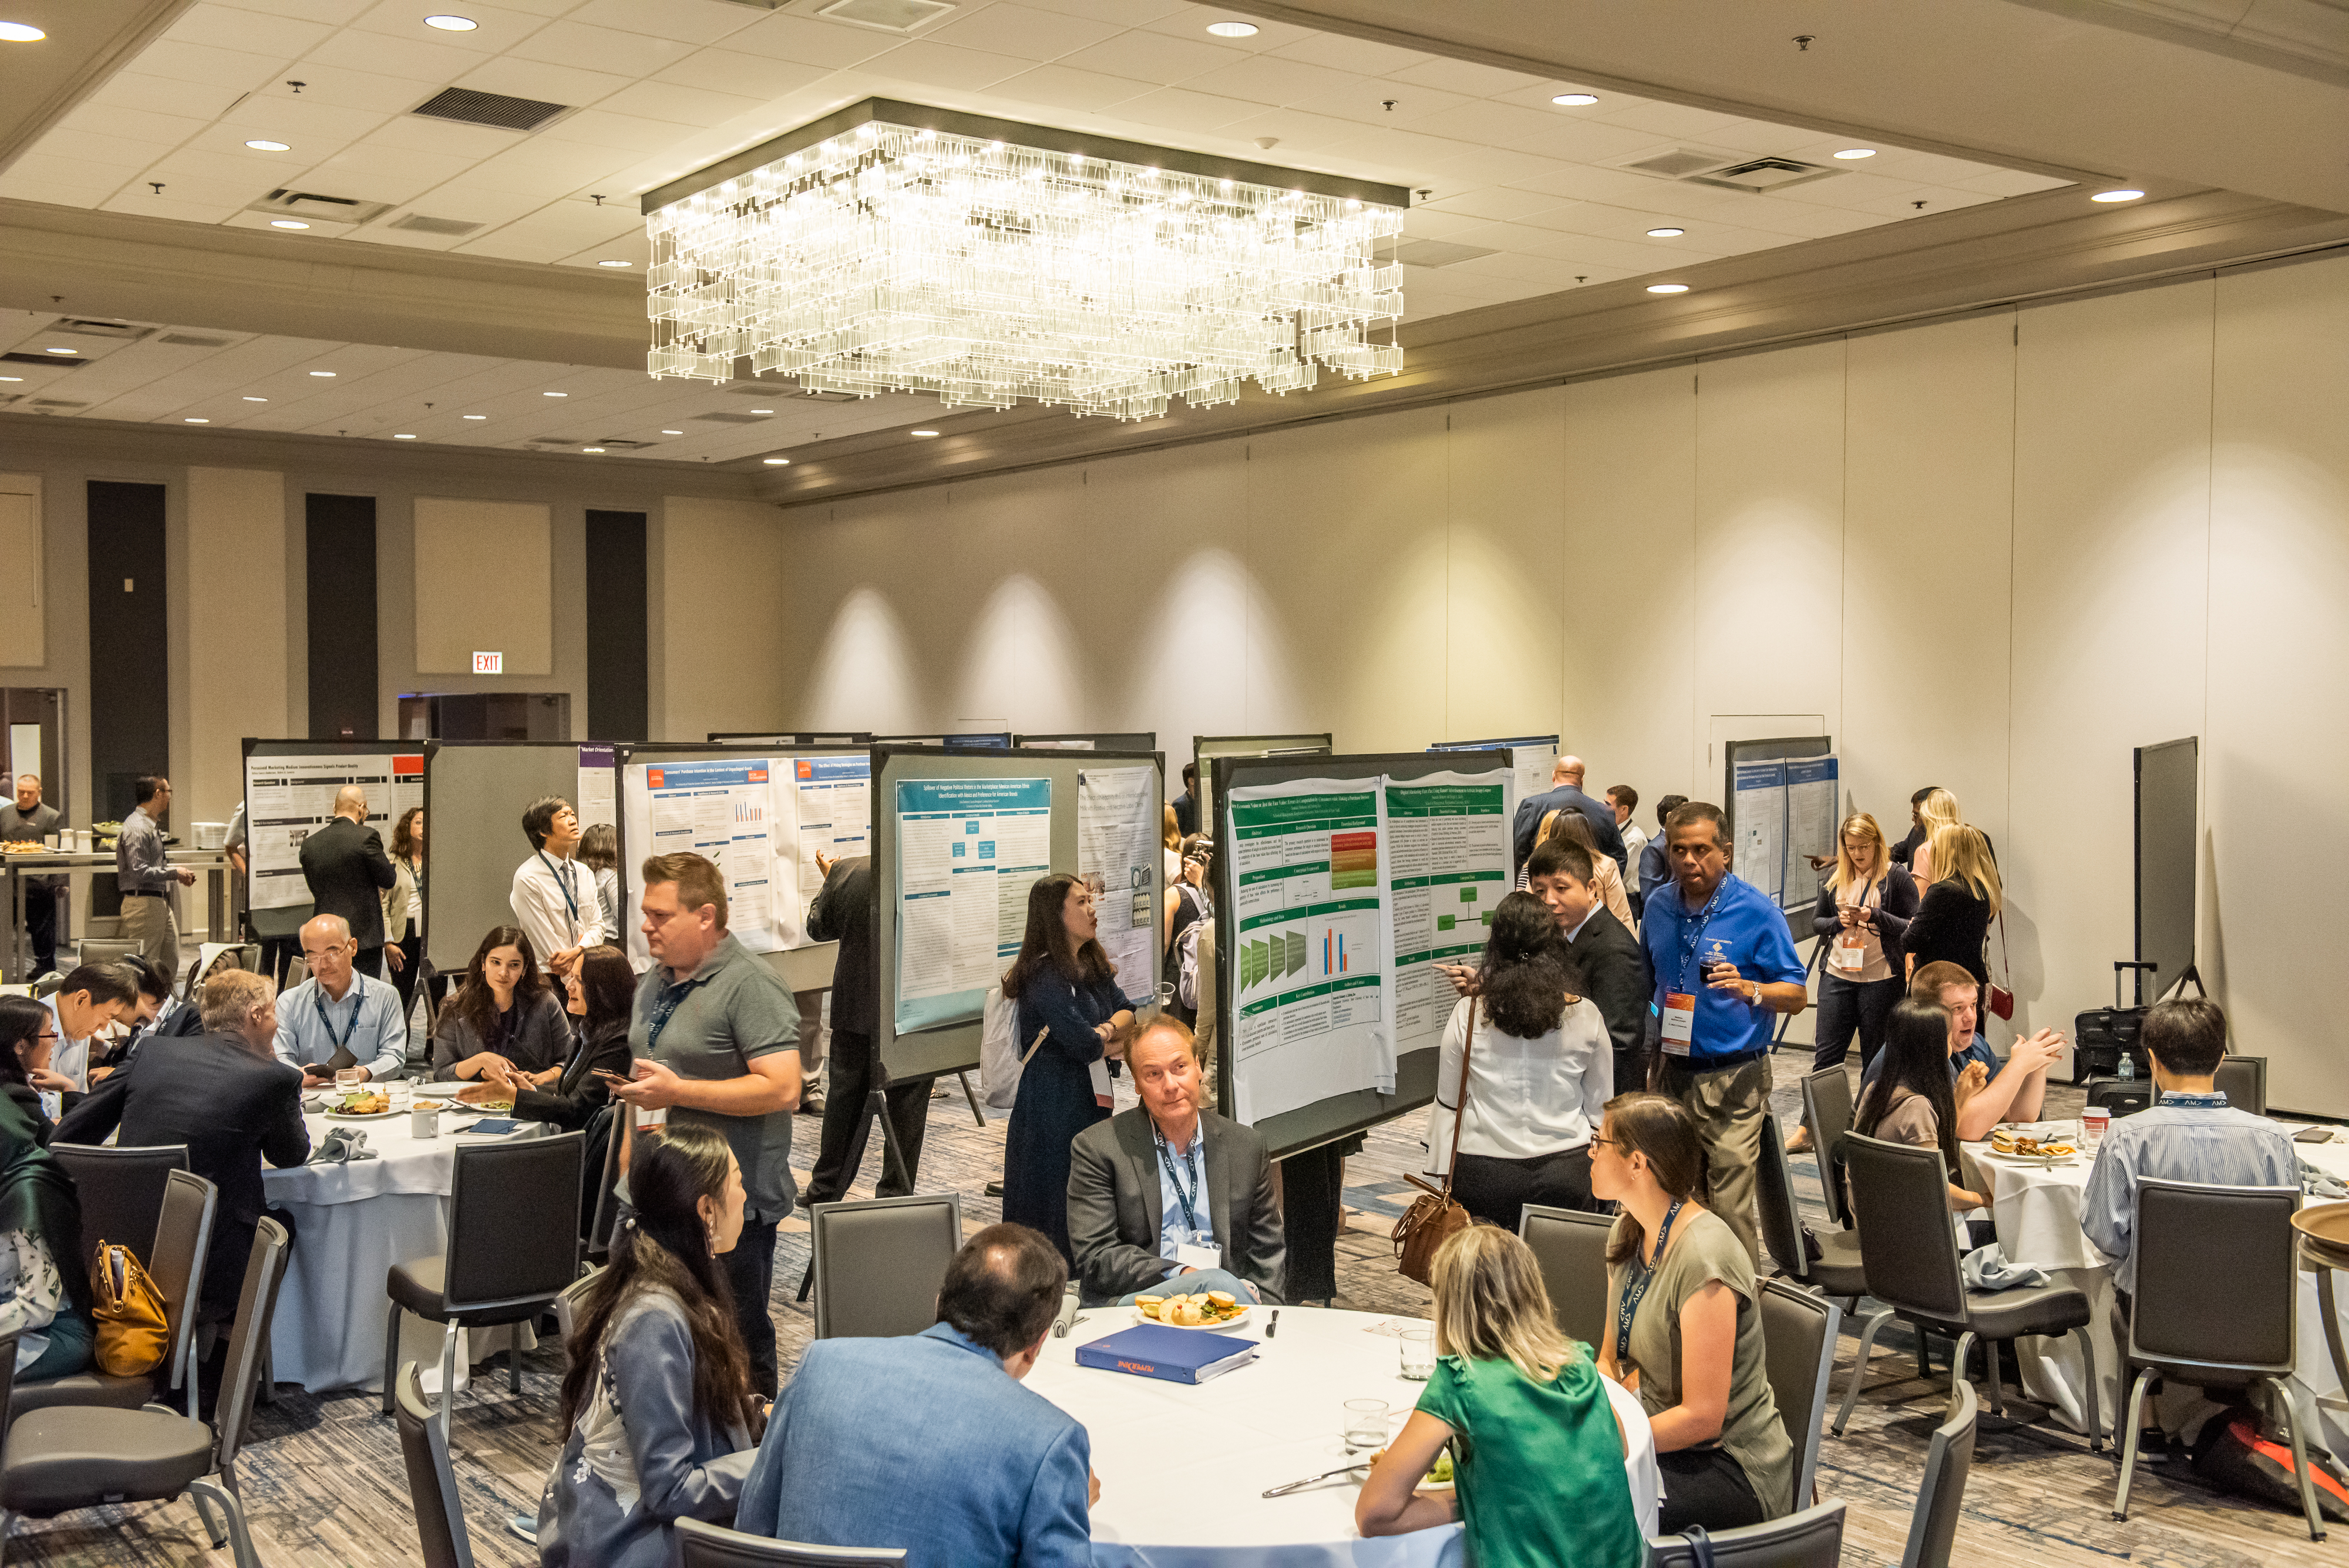 Https://www.ama/2019/11/05/poster Session Information At Throughout Uri Spring Break Dateshttps://events.uri.edu/calendar